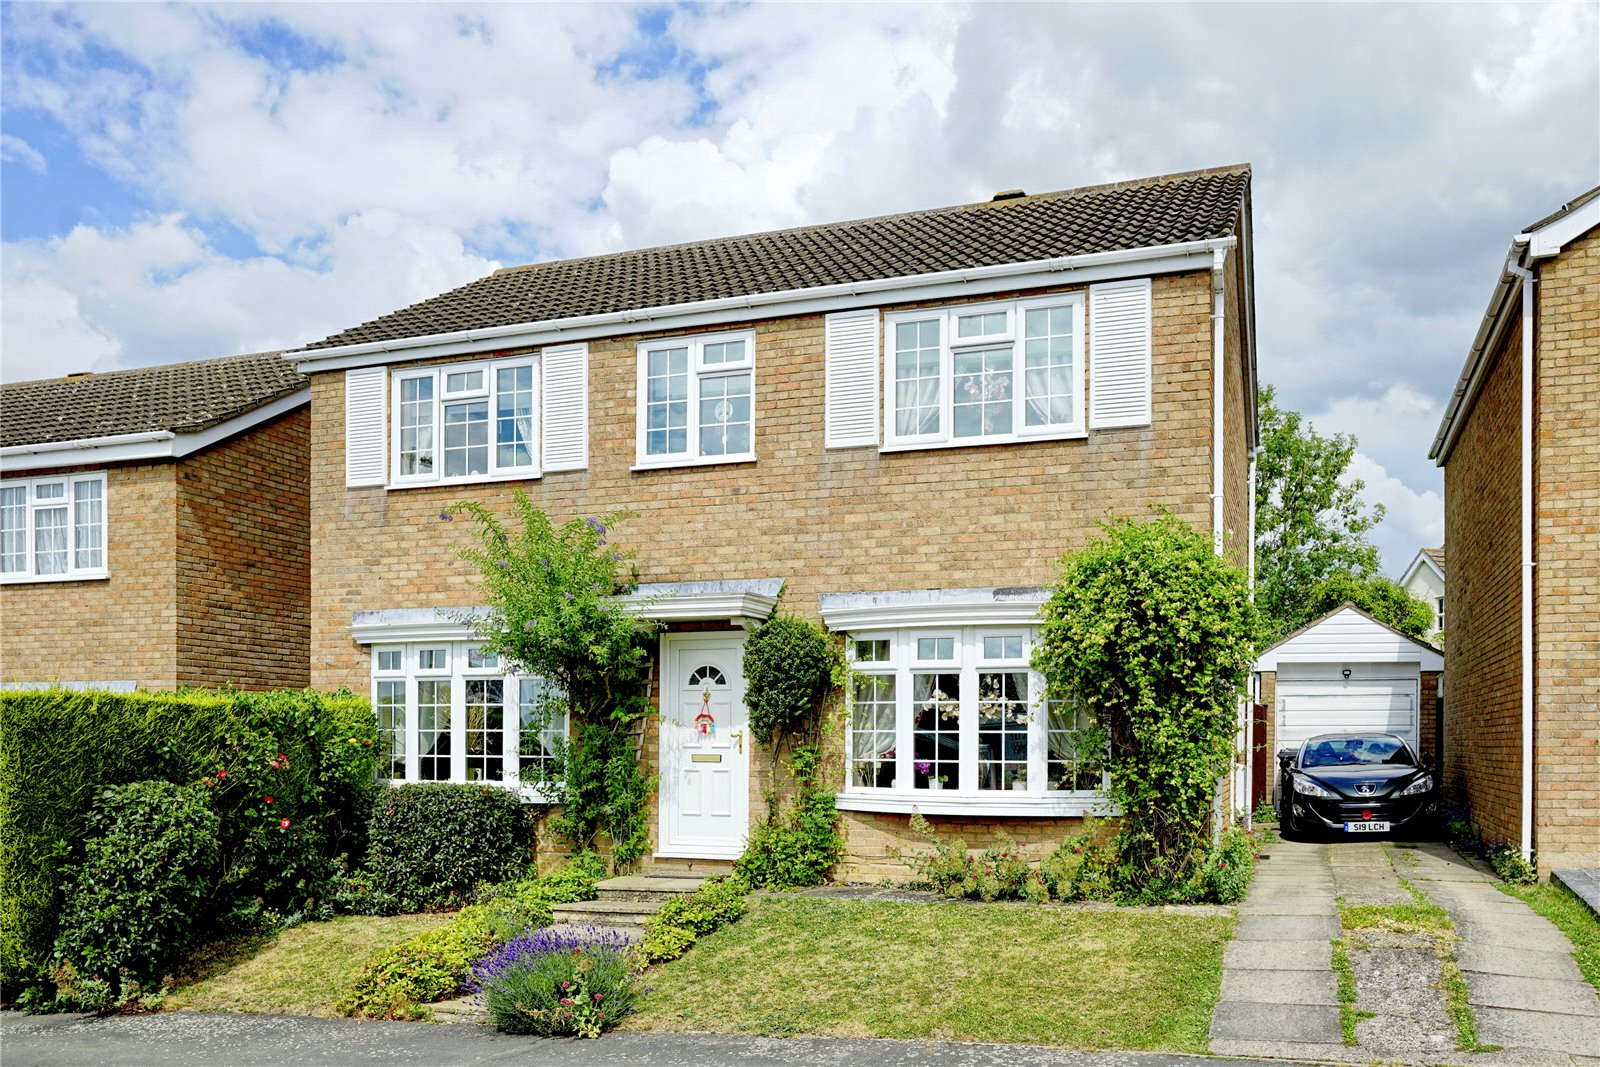 4 bed house for sale in Great Paxton, PE19 6RR - Property Image 1